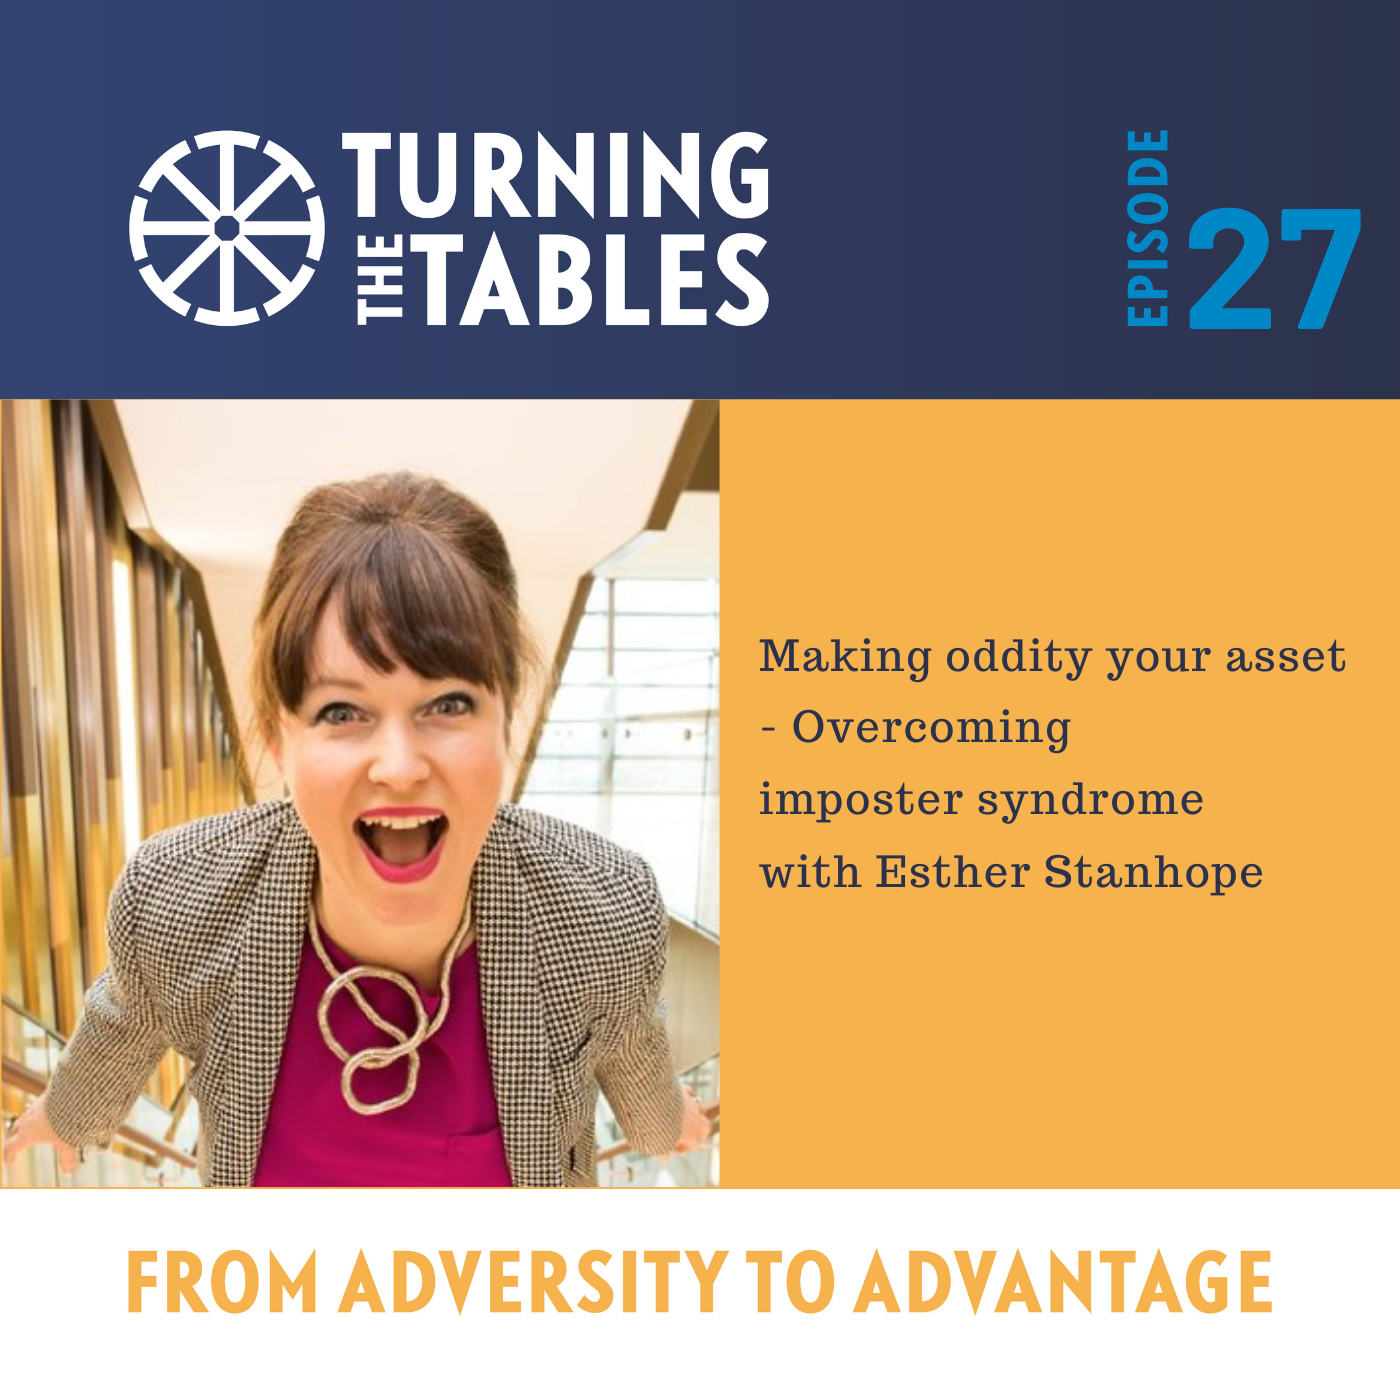 EP 27 : Making oddity your asset - Overcoming imposter syndrome with Esther Stanhope.